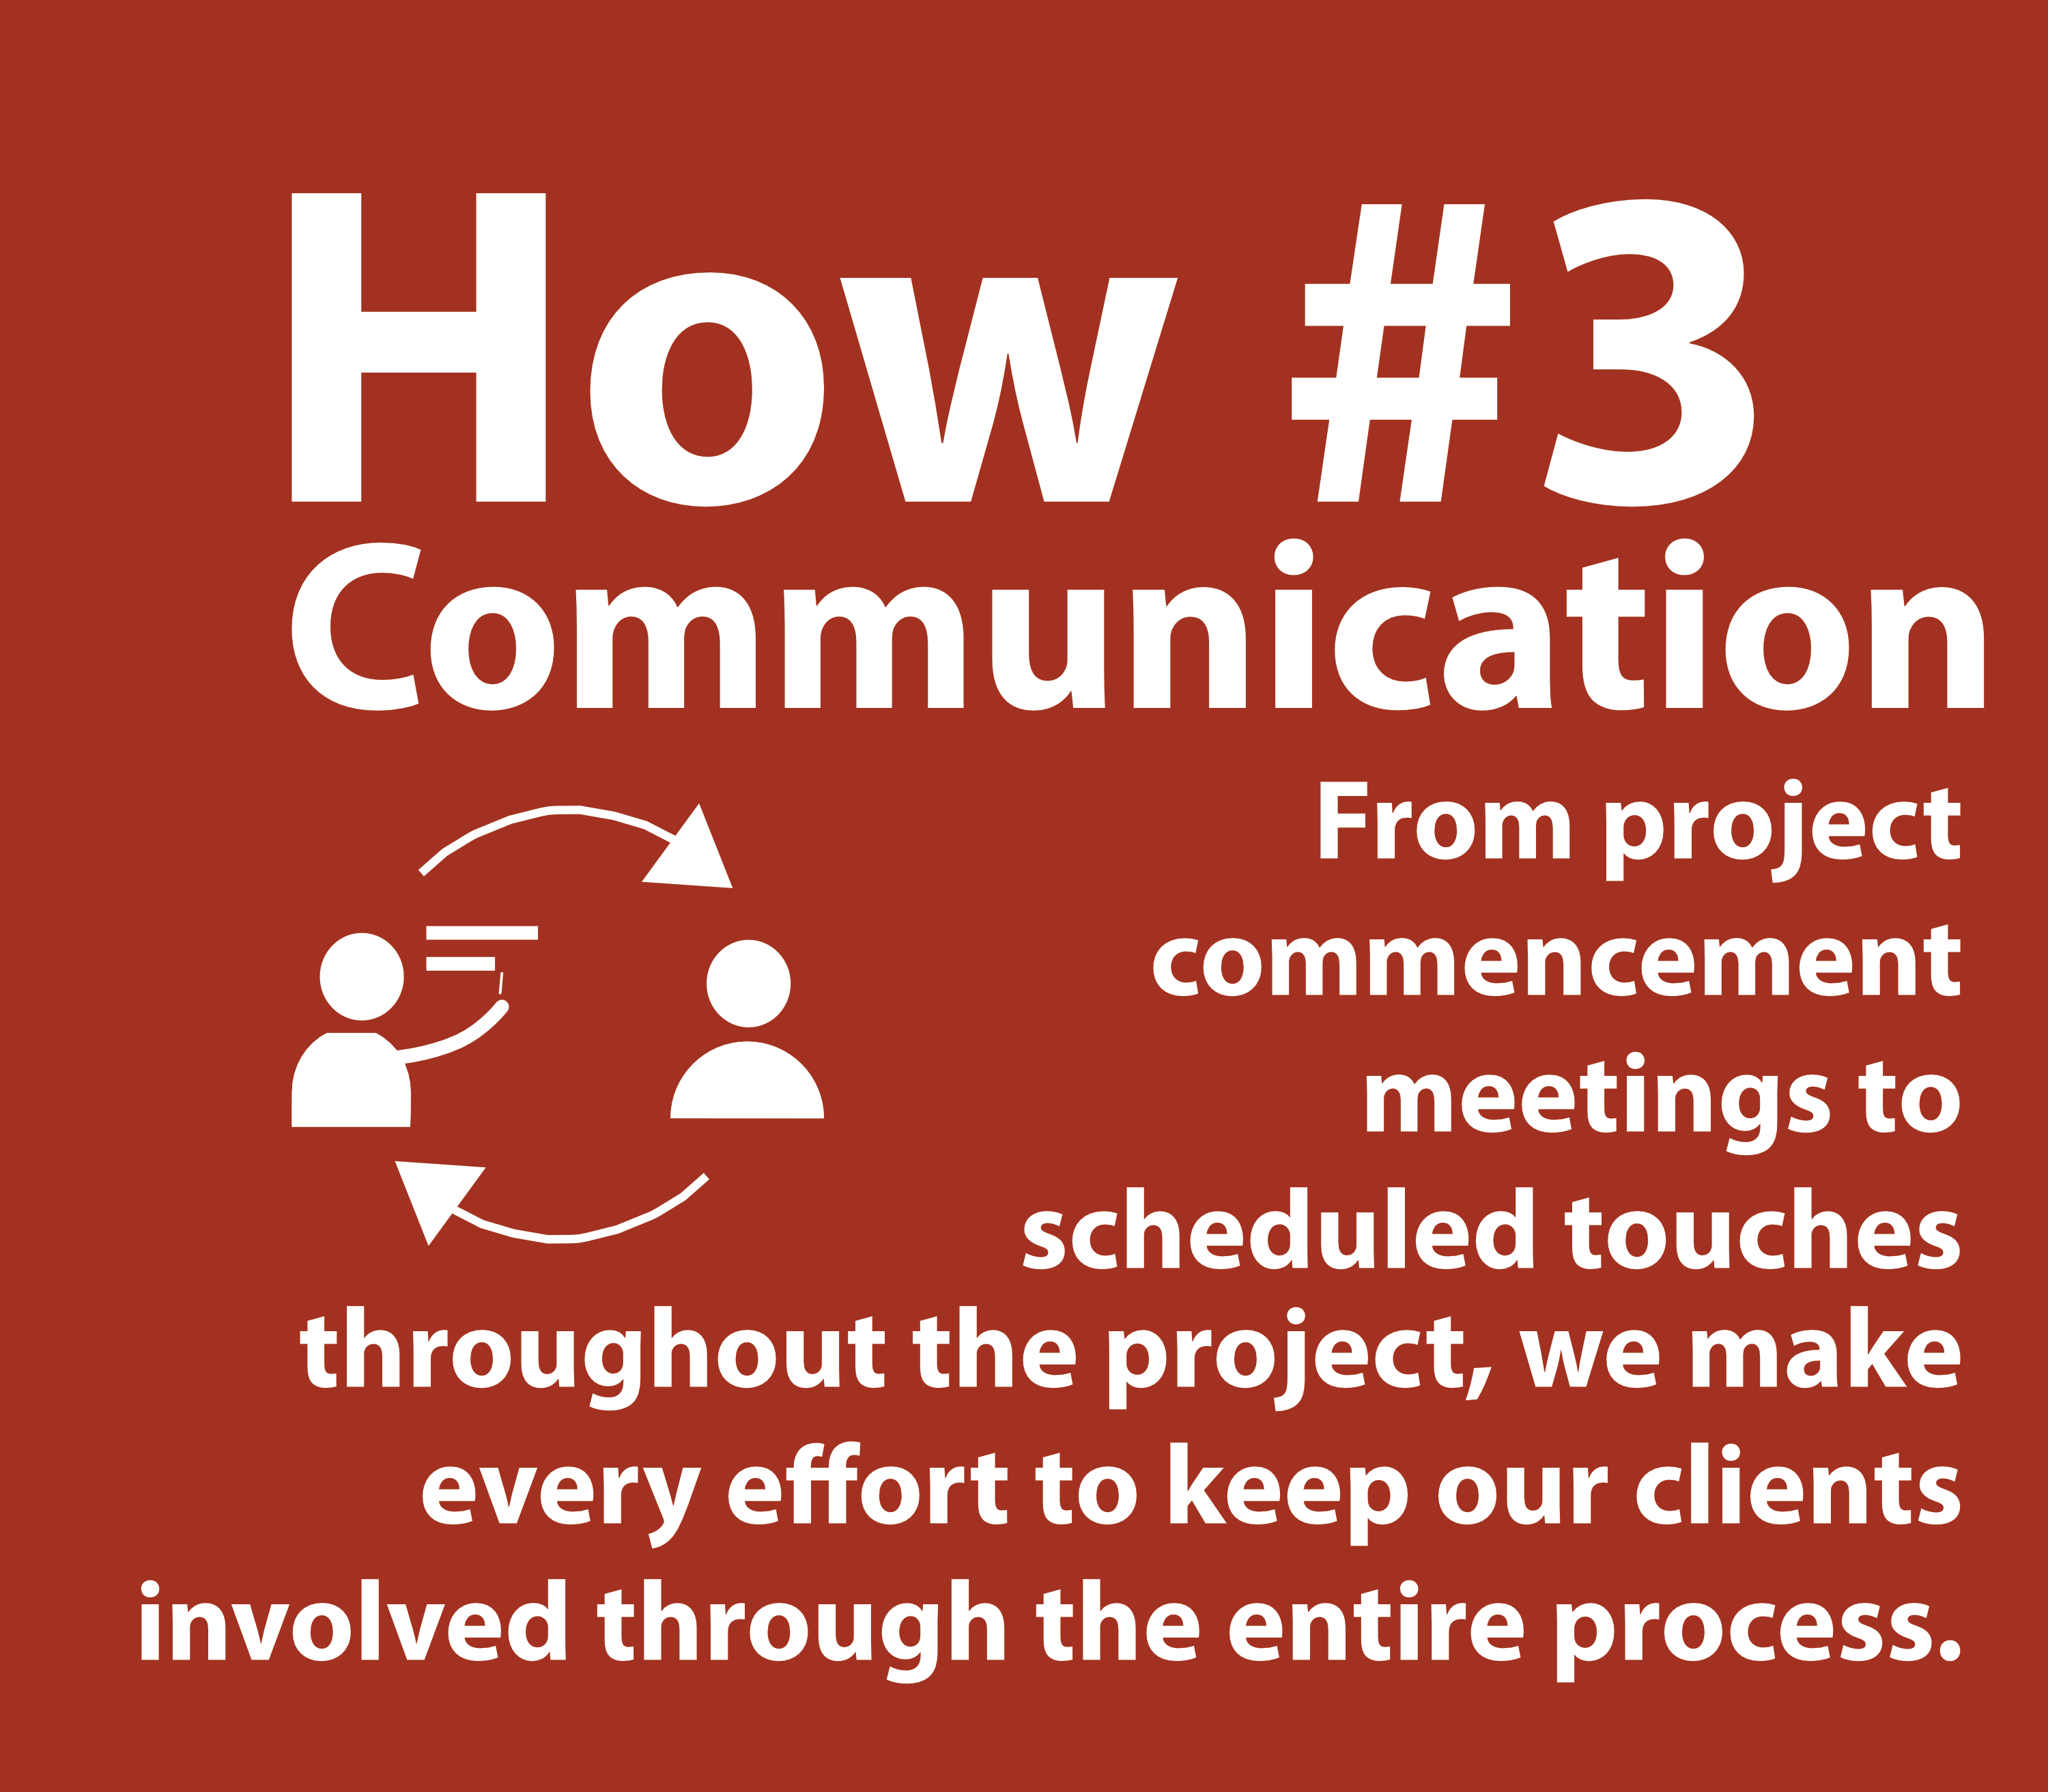 How - Contractor and Customer Communication